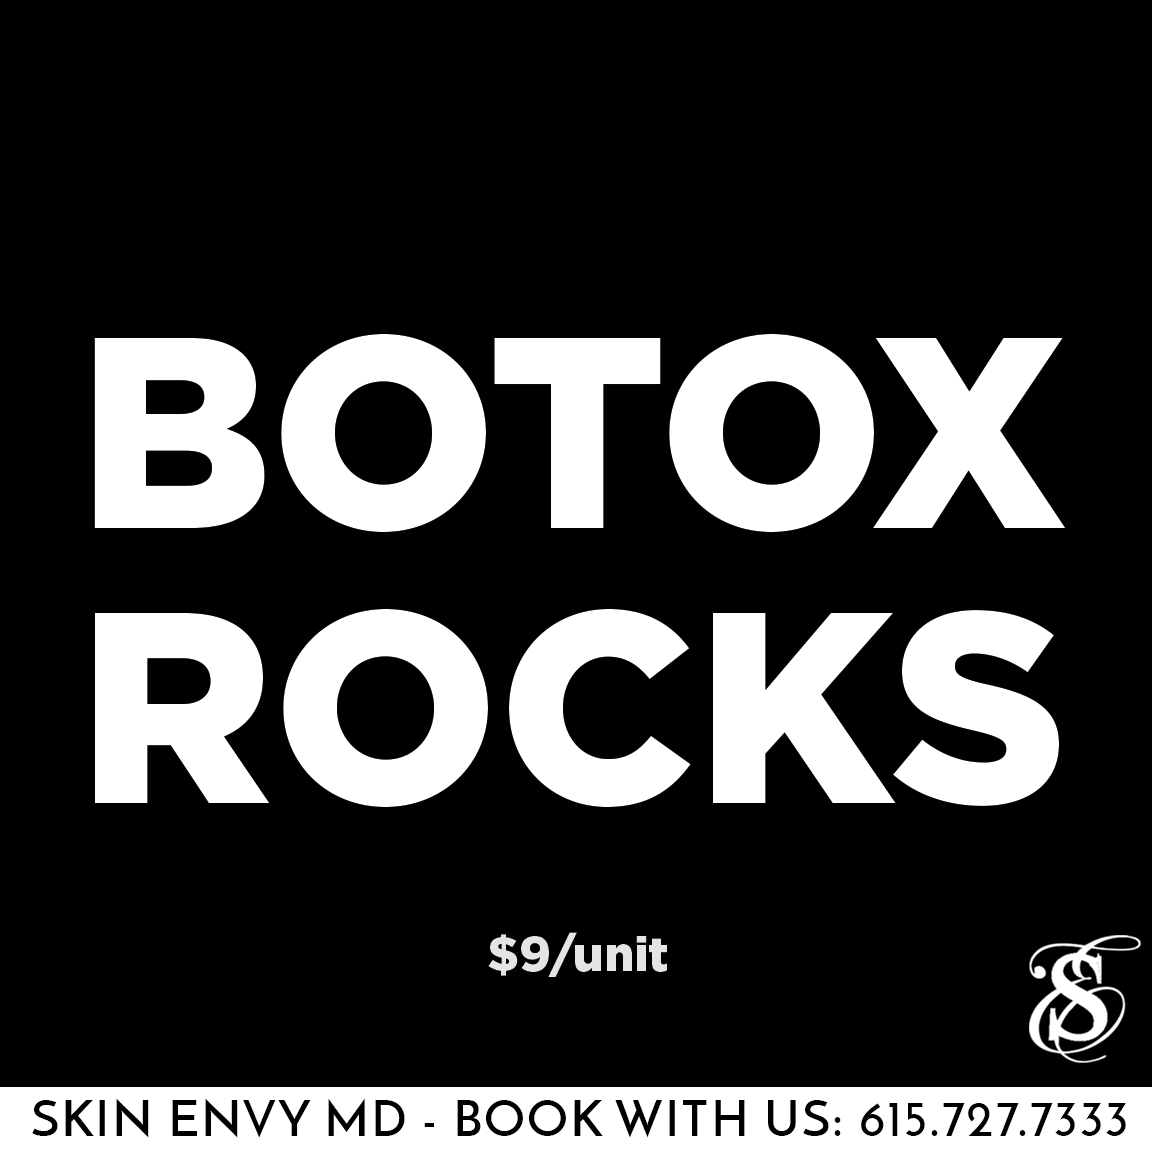 Botox Rocks - $9 per unit - Skin Care by Skin Envy Nashville.png